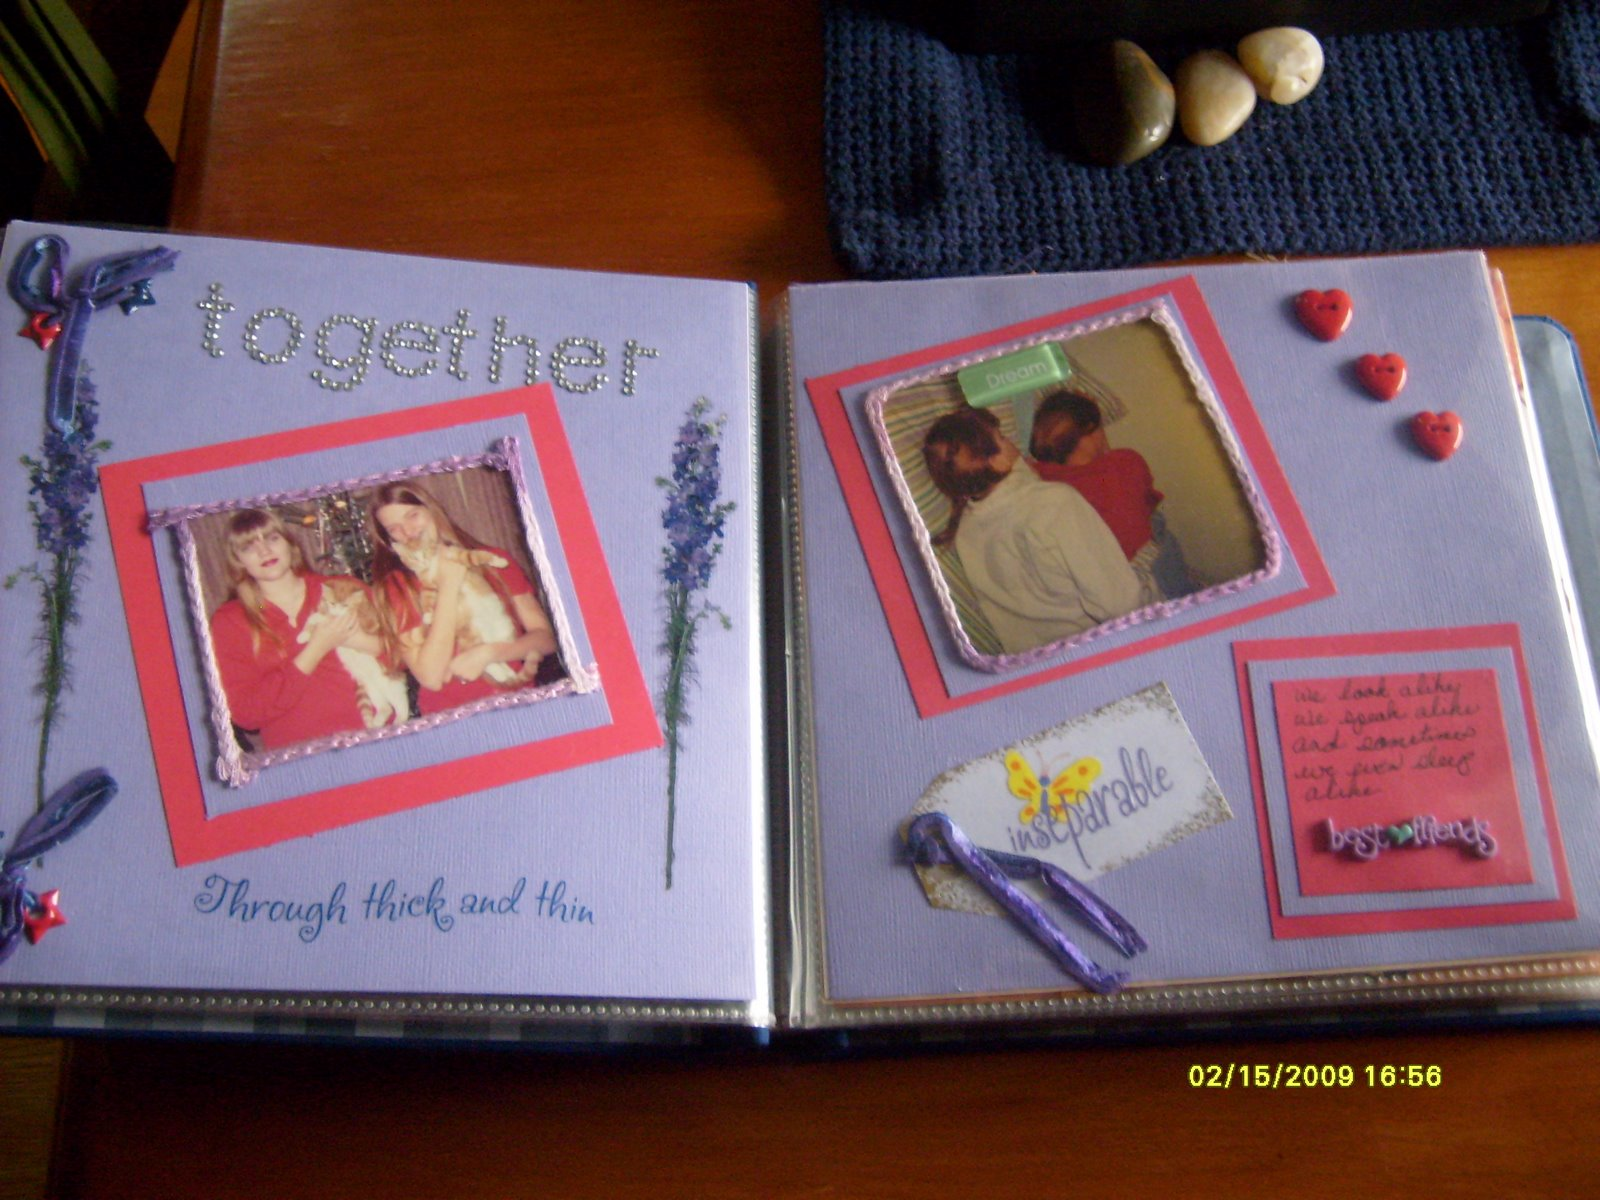 How to scrapbook memories - Today My Younger Sister Gave Me A Gift Of Memories A Scrapbook Of The Two Of Us Through The Years From Toddlers To The Present Time Just Us No One Else